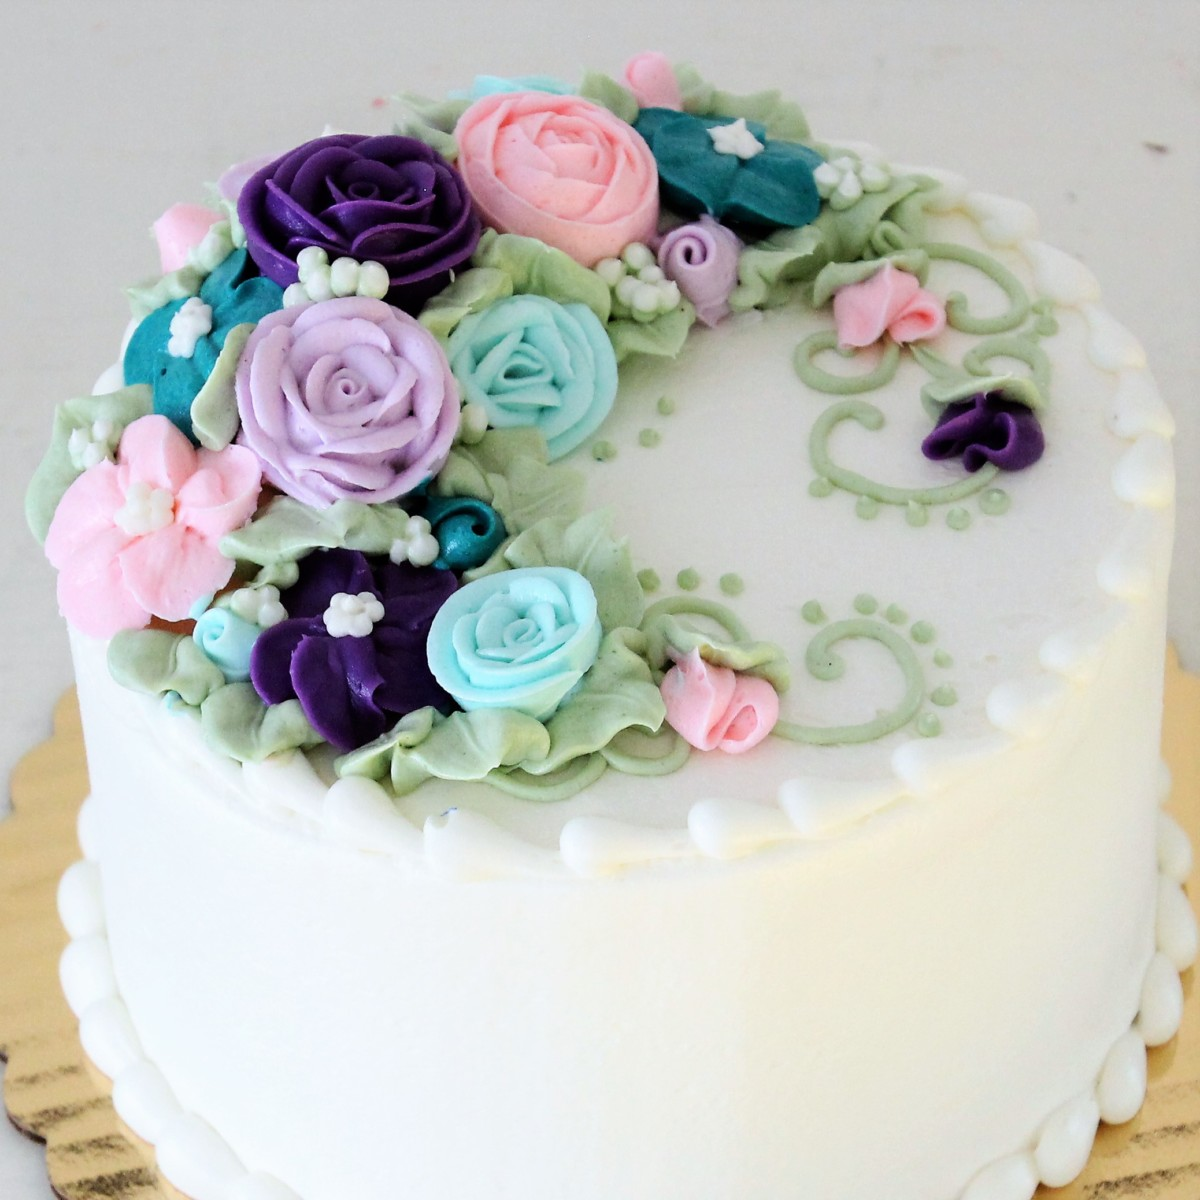 top tier of a wedding cake from cafe pierrot in sussex county nj